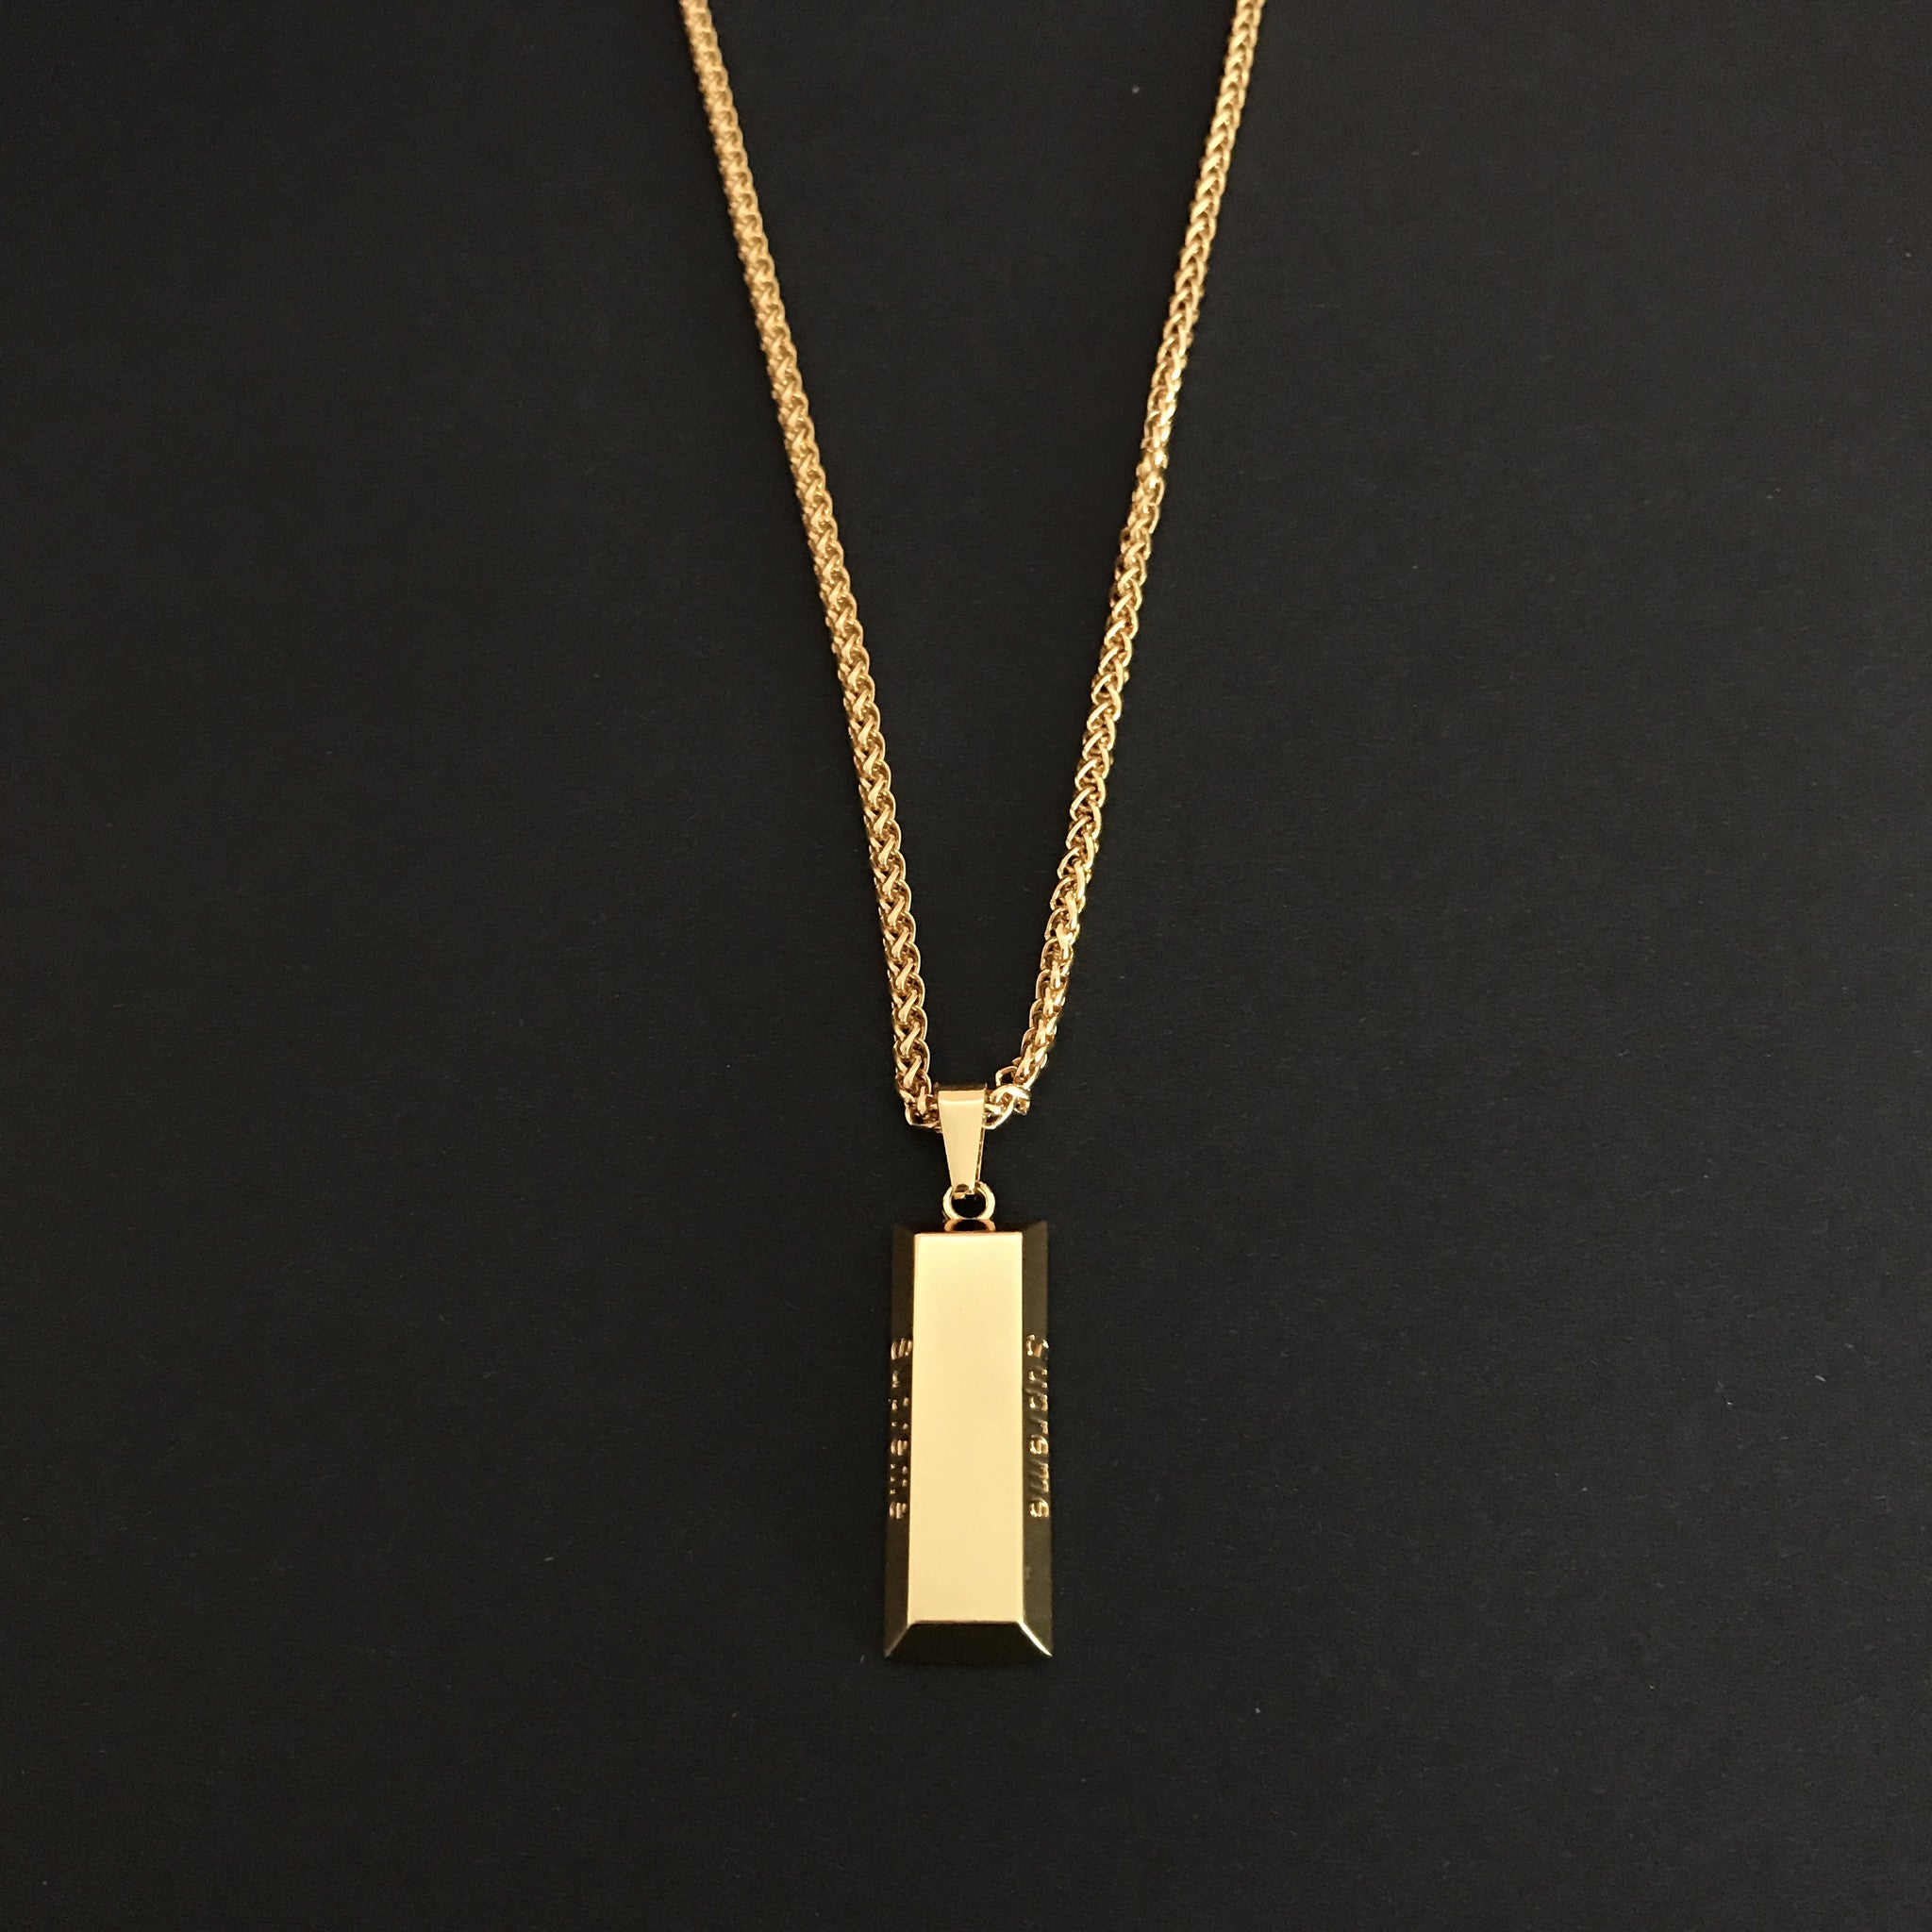 necklace pendant szendrei original p huckberry category store bar tiny fbcgahylui julia gold